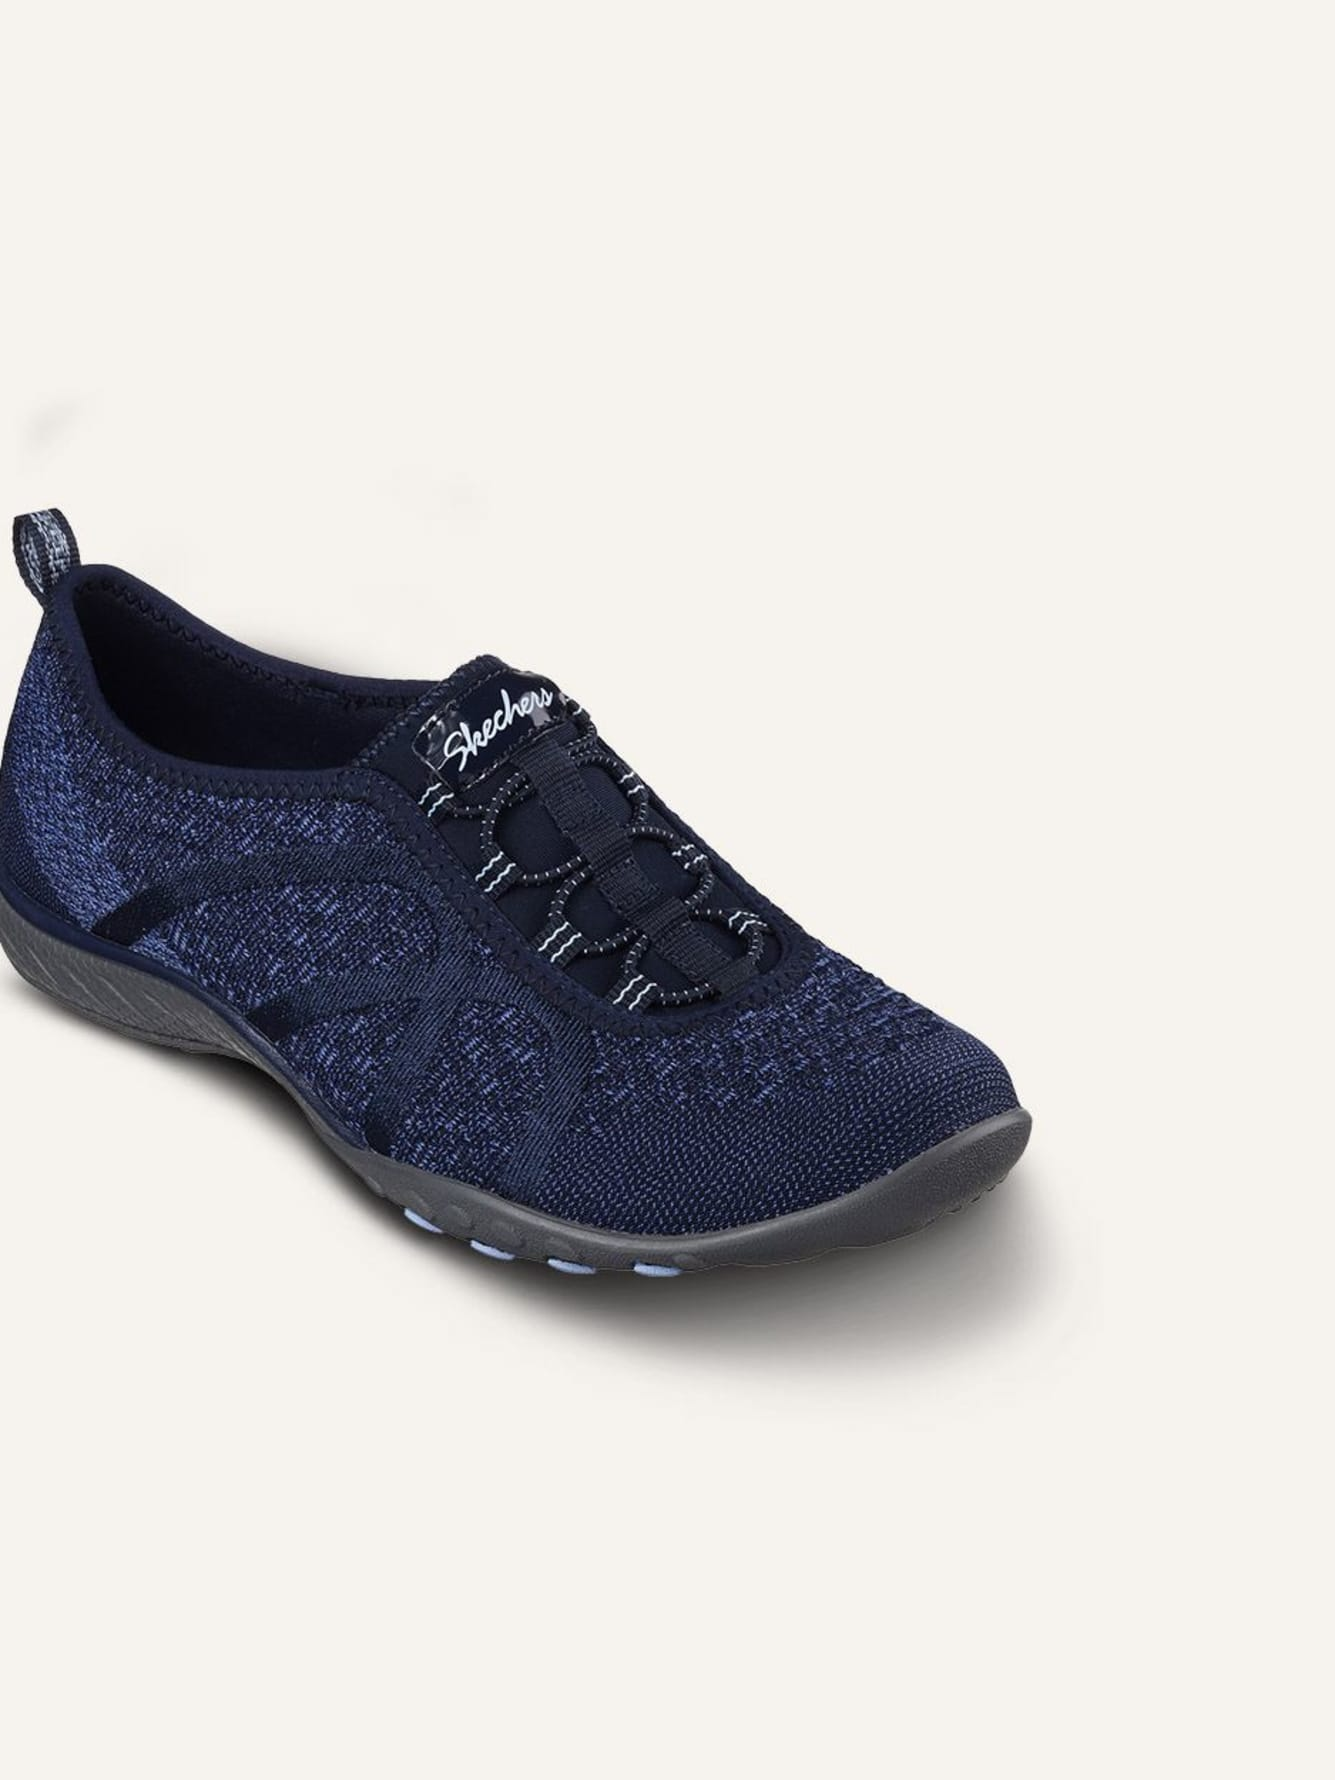 Skechers Relaxed Fit, Breathe Easy Fortune Knit - Wide Width Pull-On Casual Sneakers